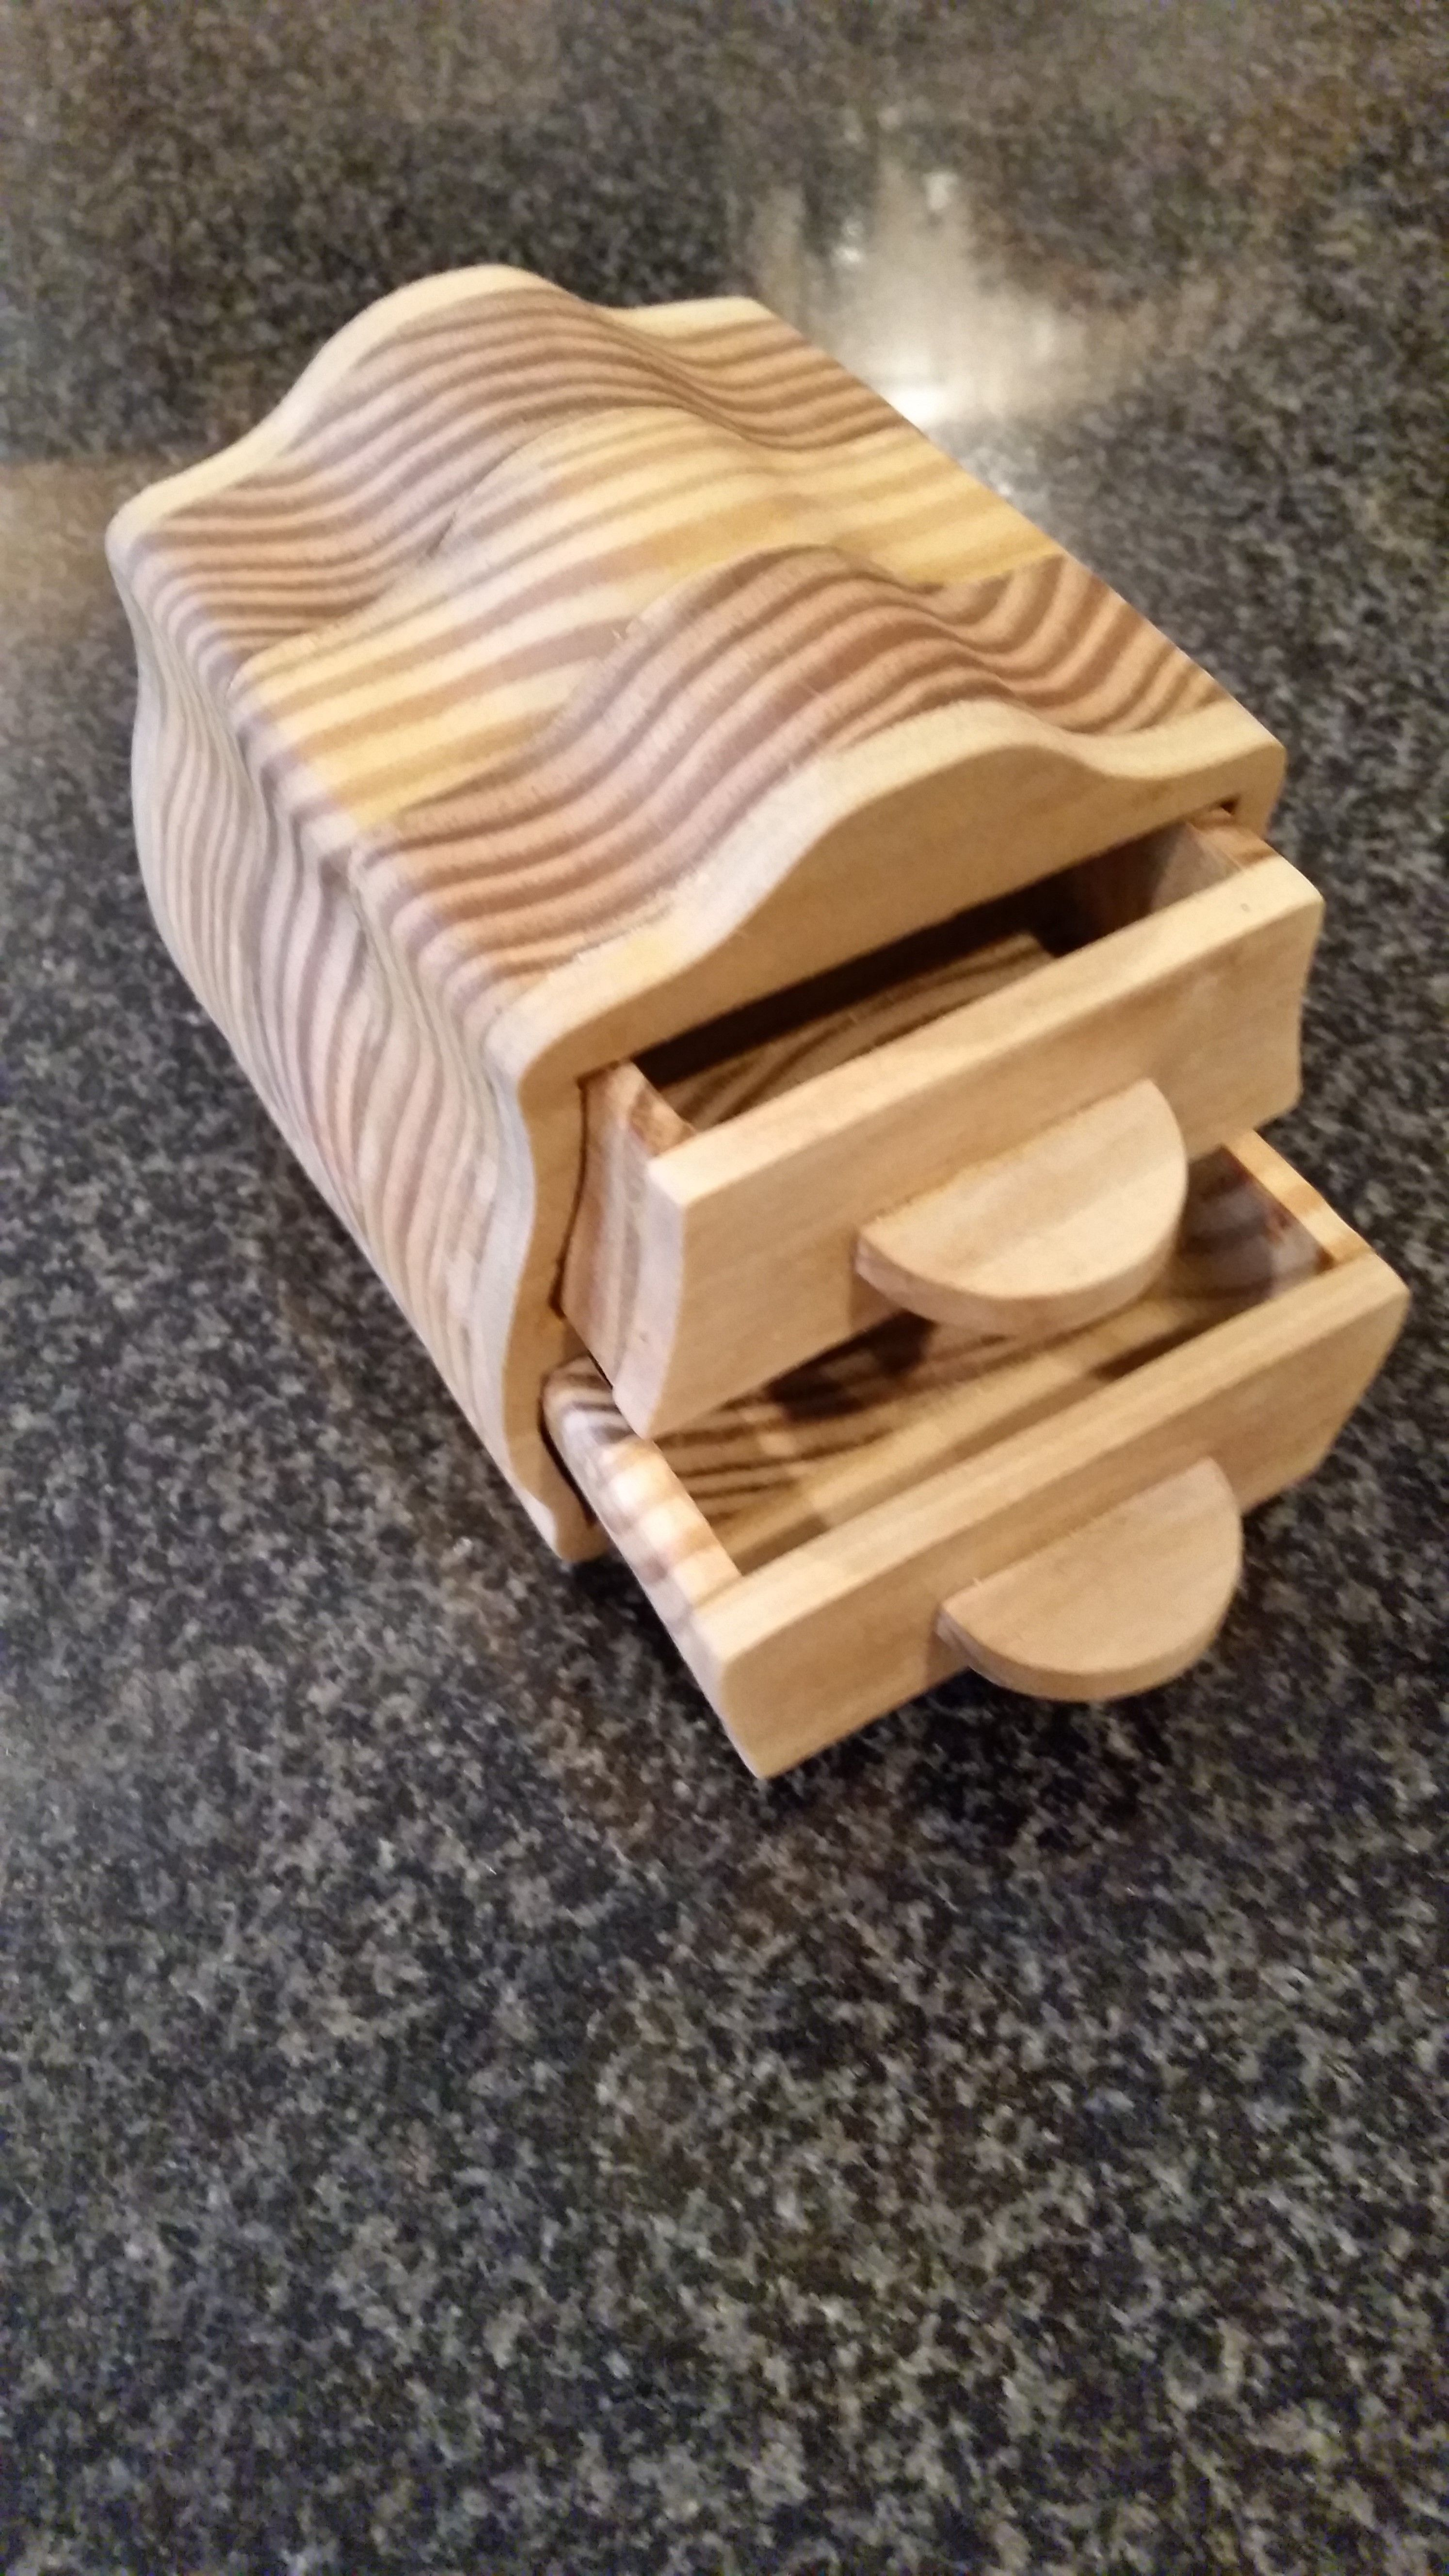 Scroll Saw Jewelry Box from Scrap Wood Tools For Woodworking